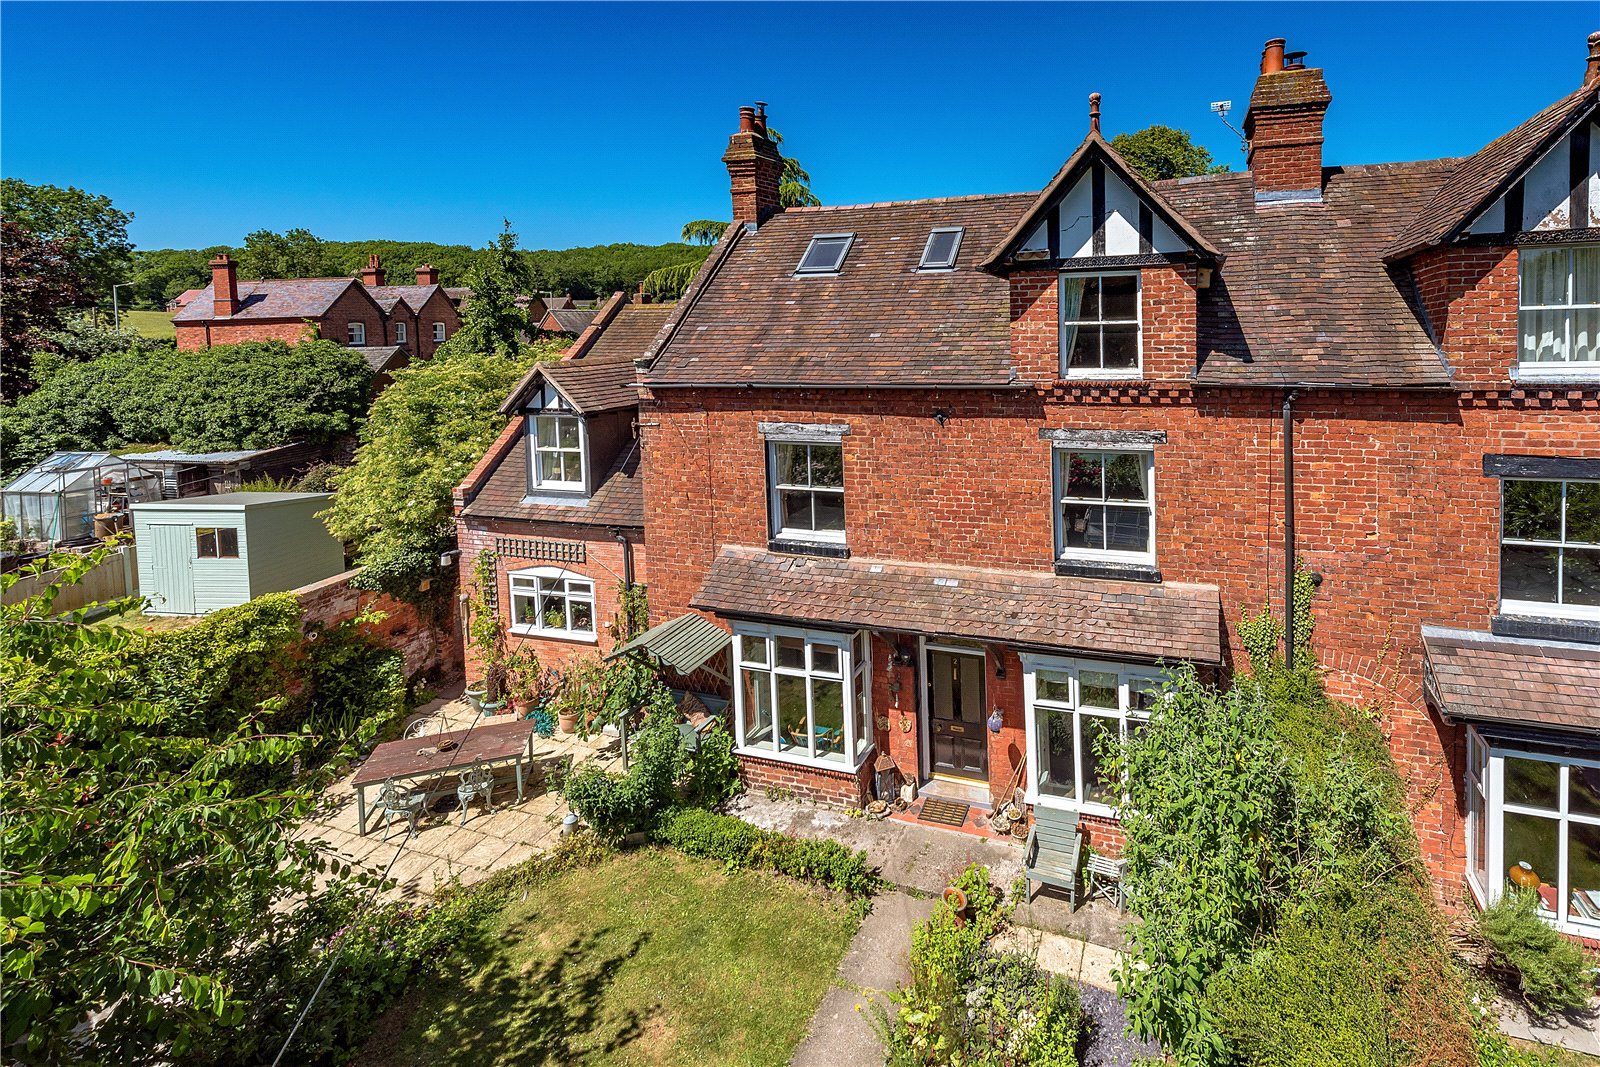 2 Wheatland Grove, Station Road, Much Wenlock, Shropshire, TF13